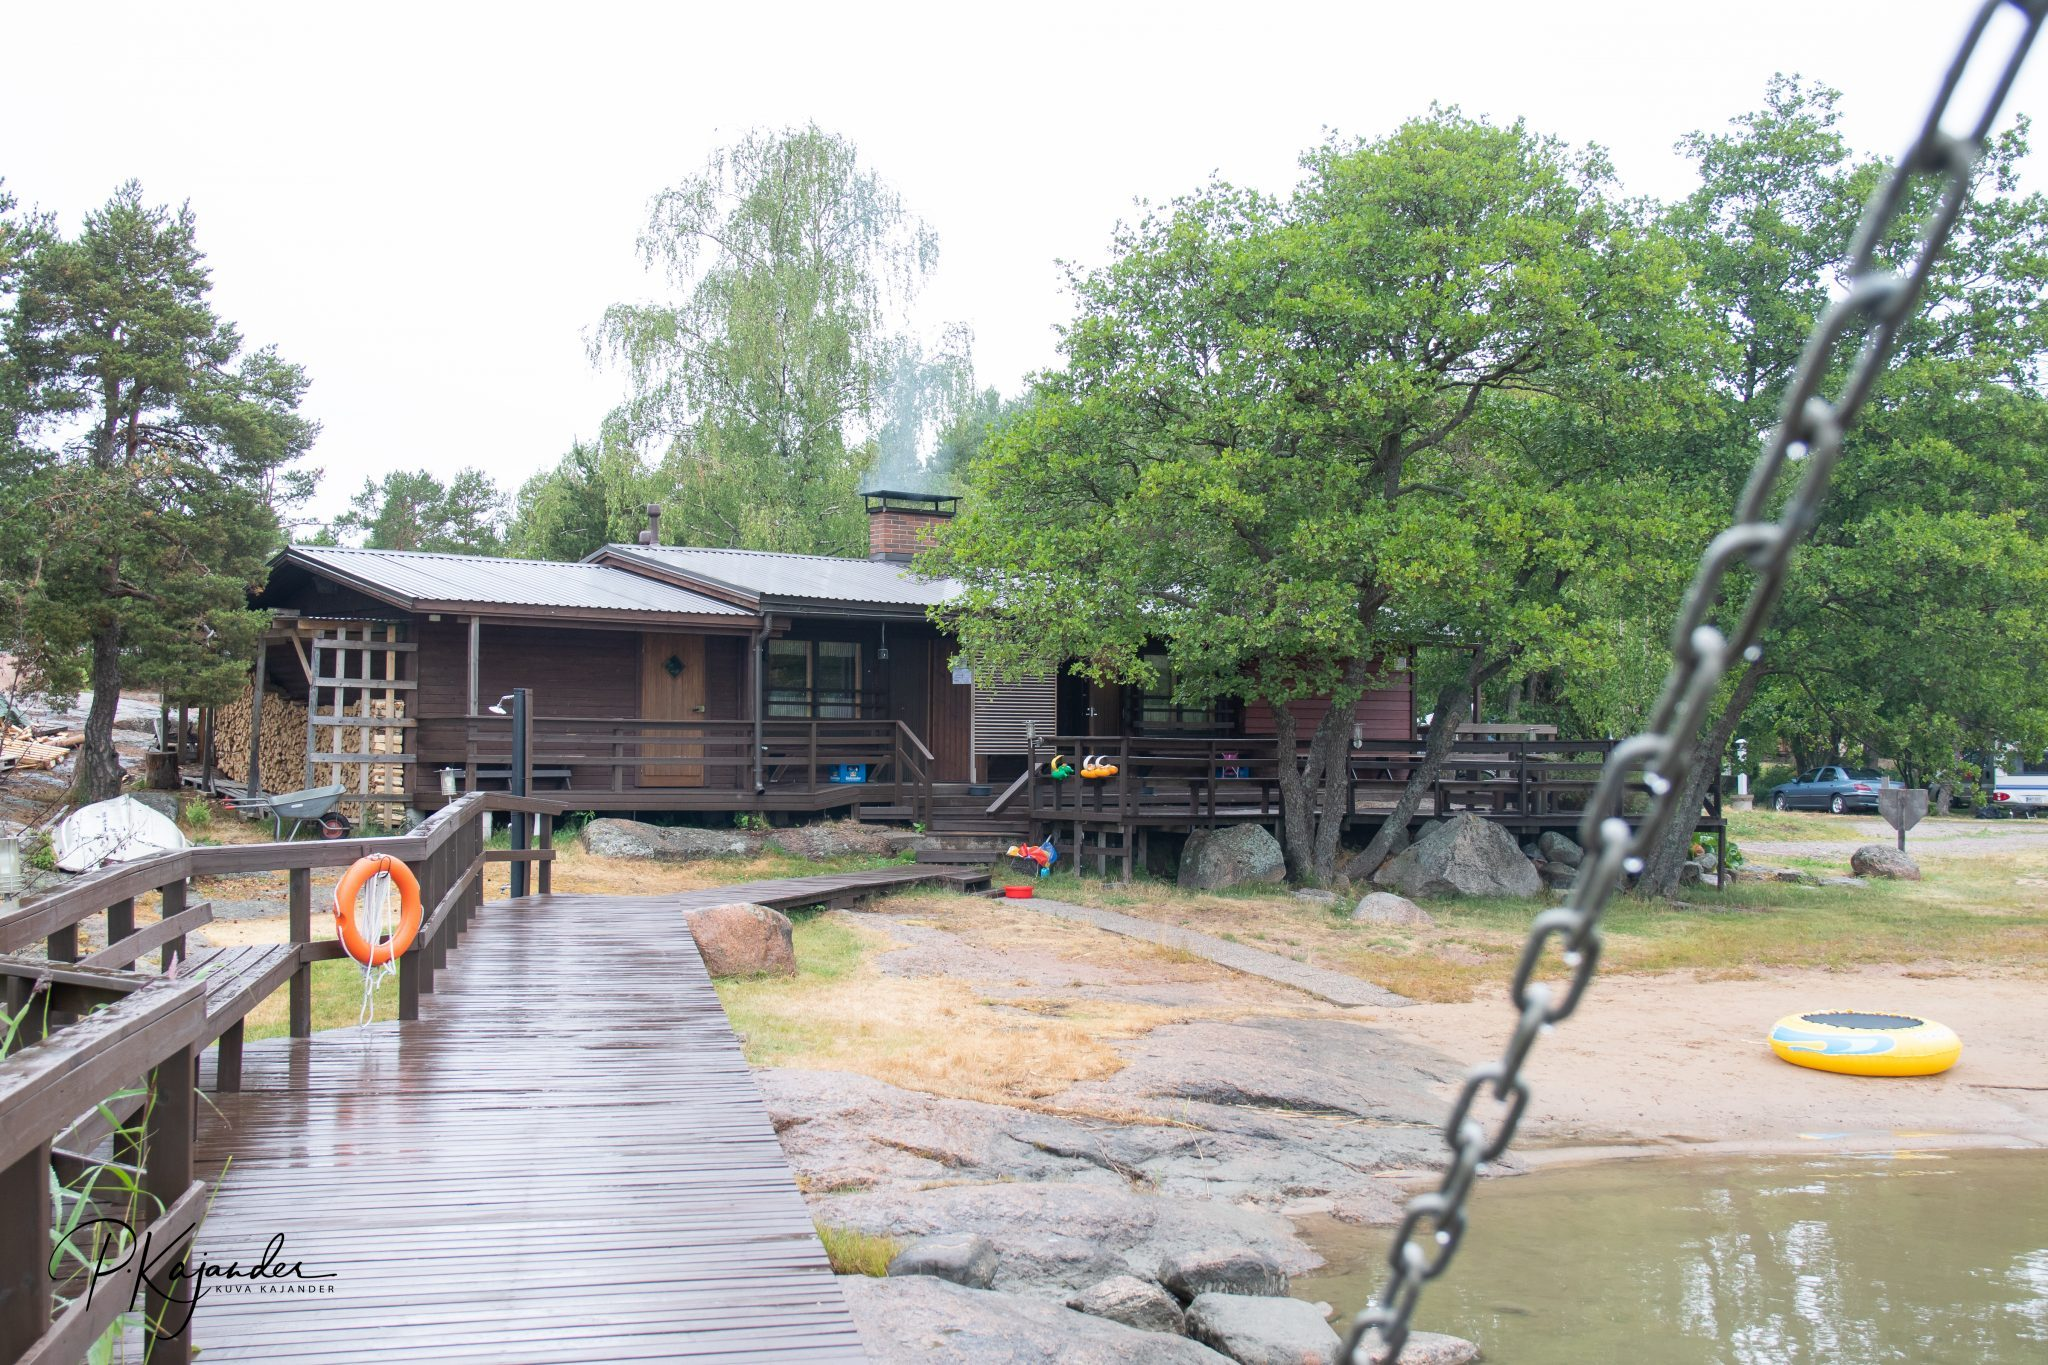 The sauna building of Mussalo